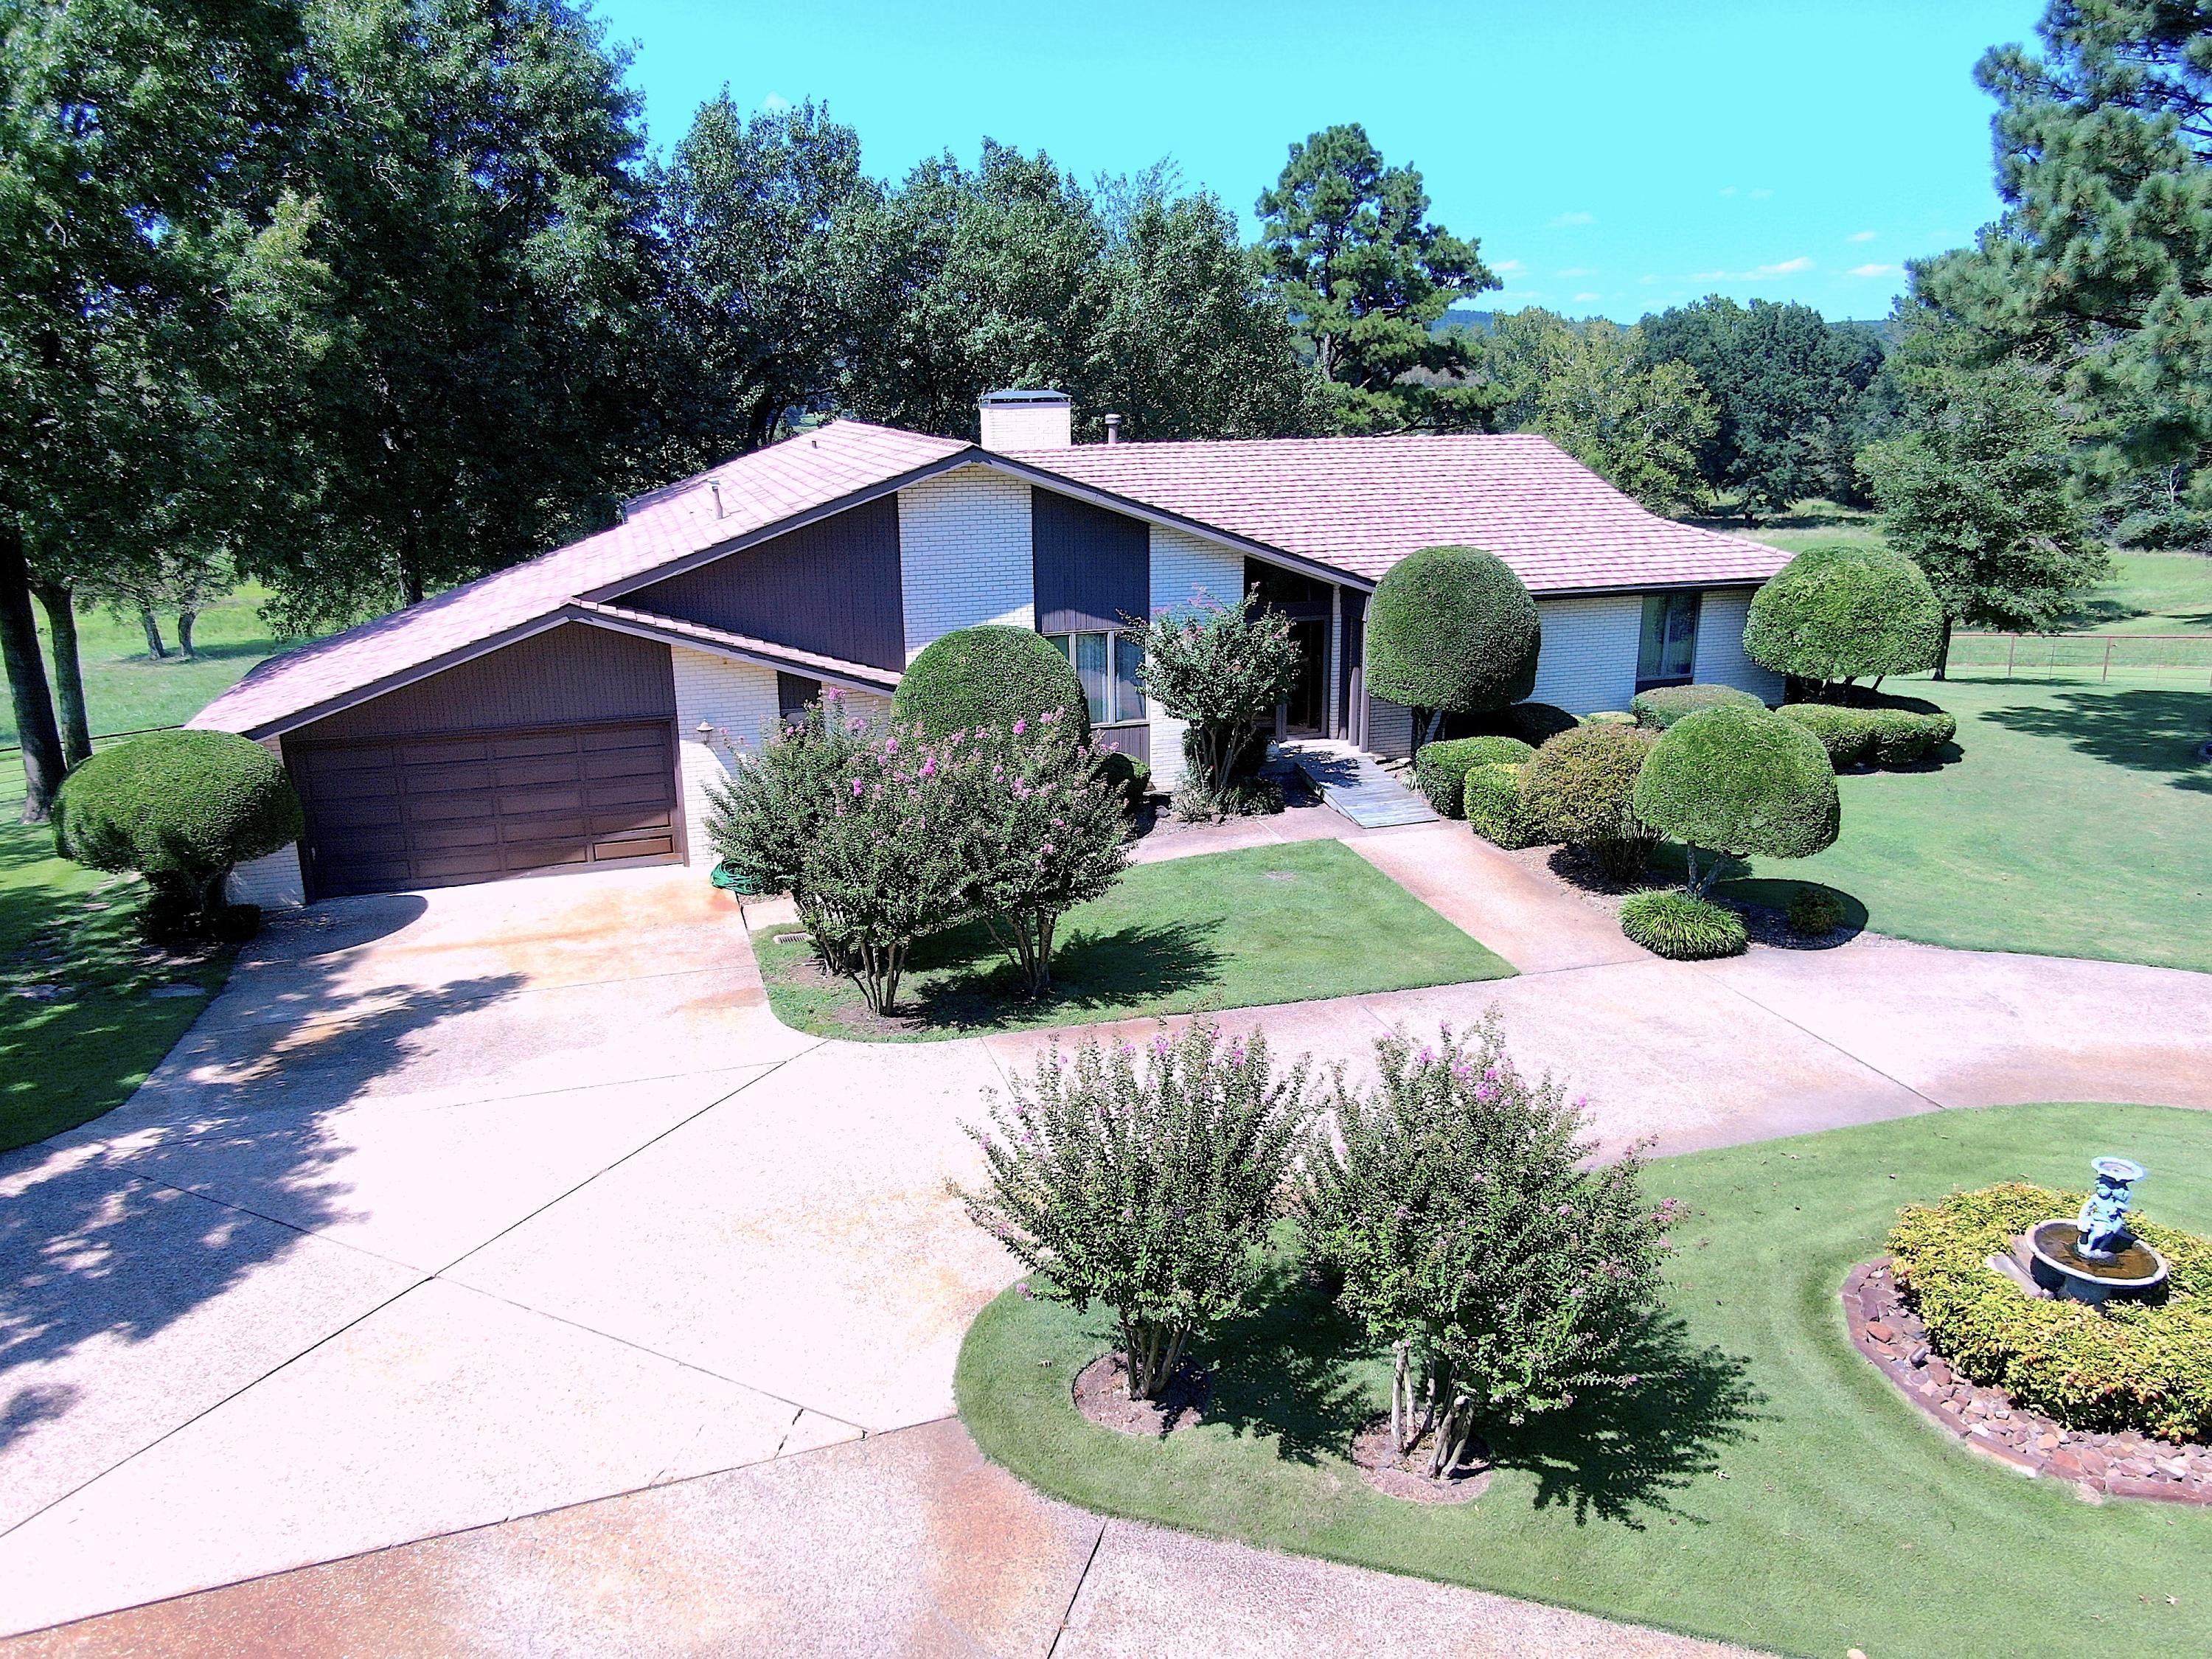 Large photo 3 of home for sale at 18015 E. State Highway 28 , Ola, AR